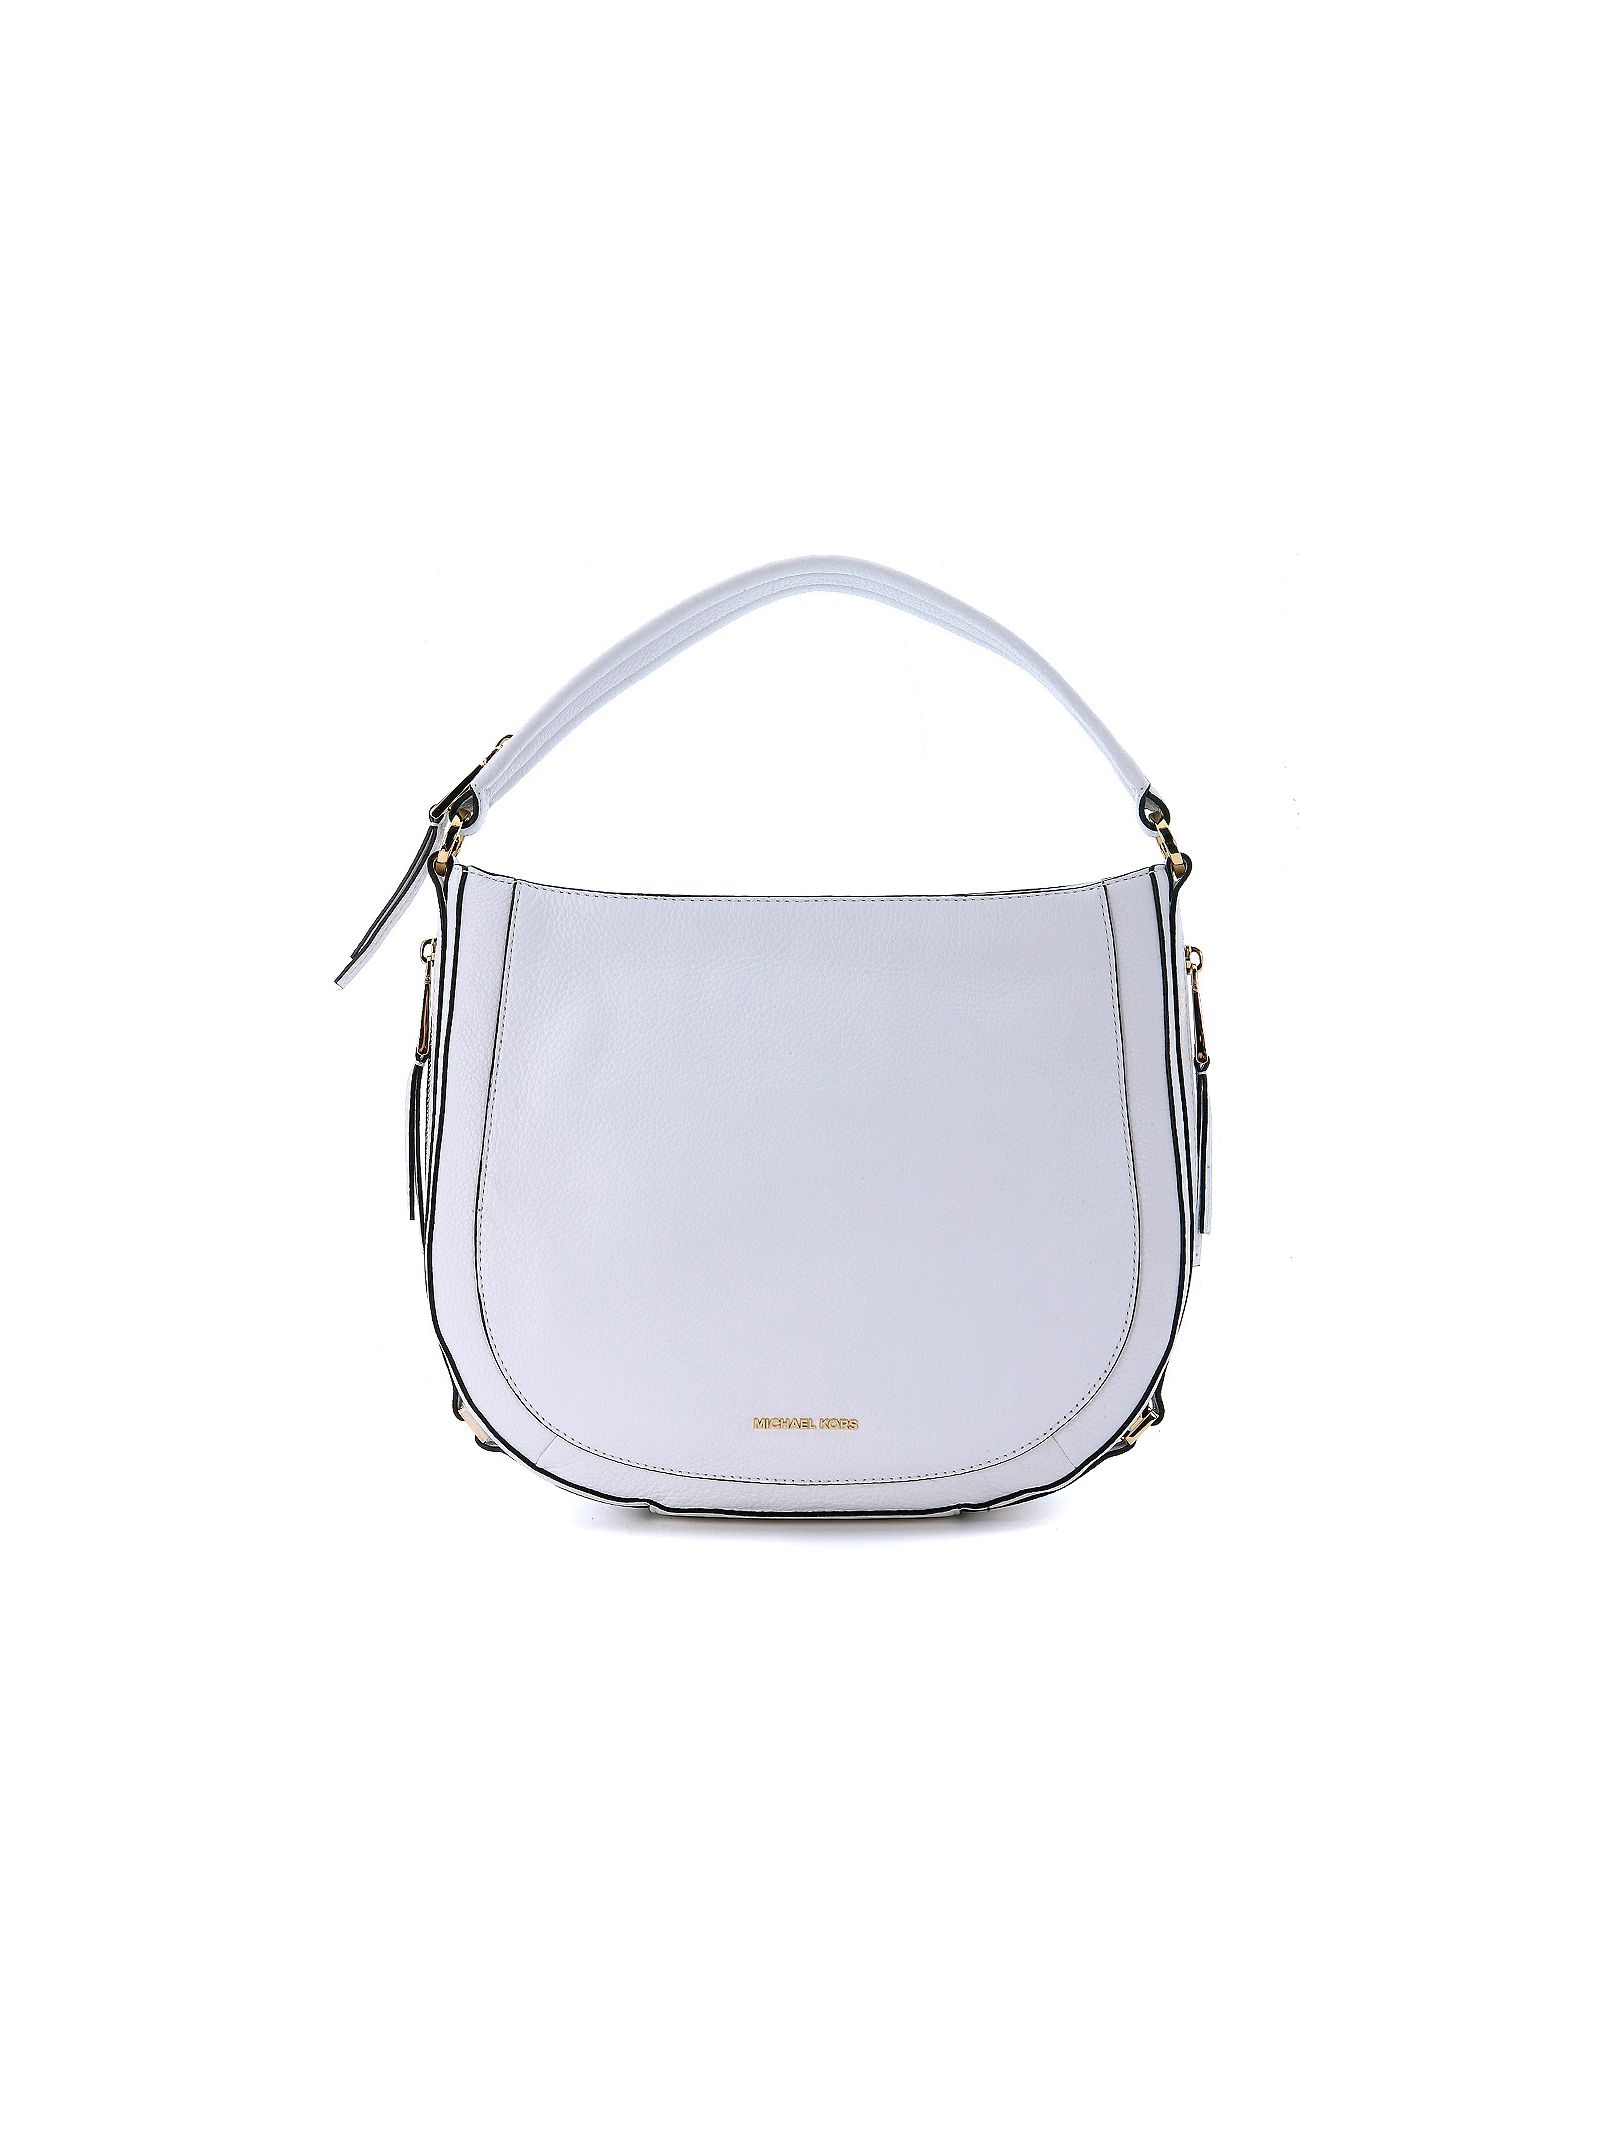 michael kors female  michael kors julia white leather shoulder bag